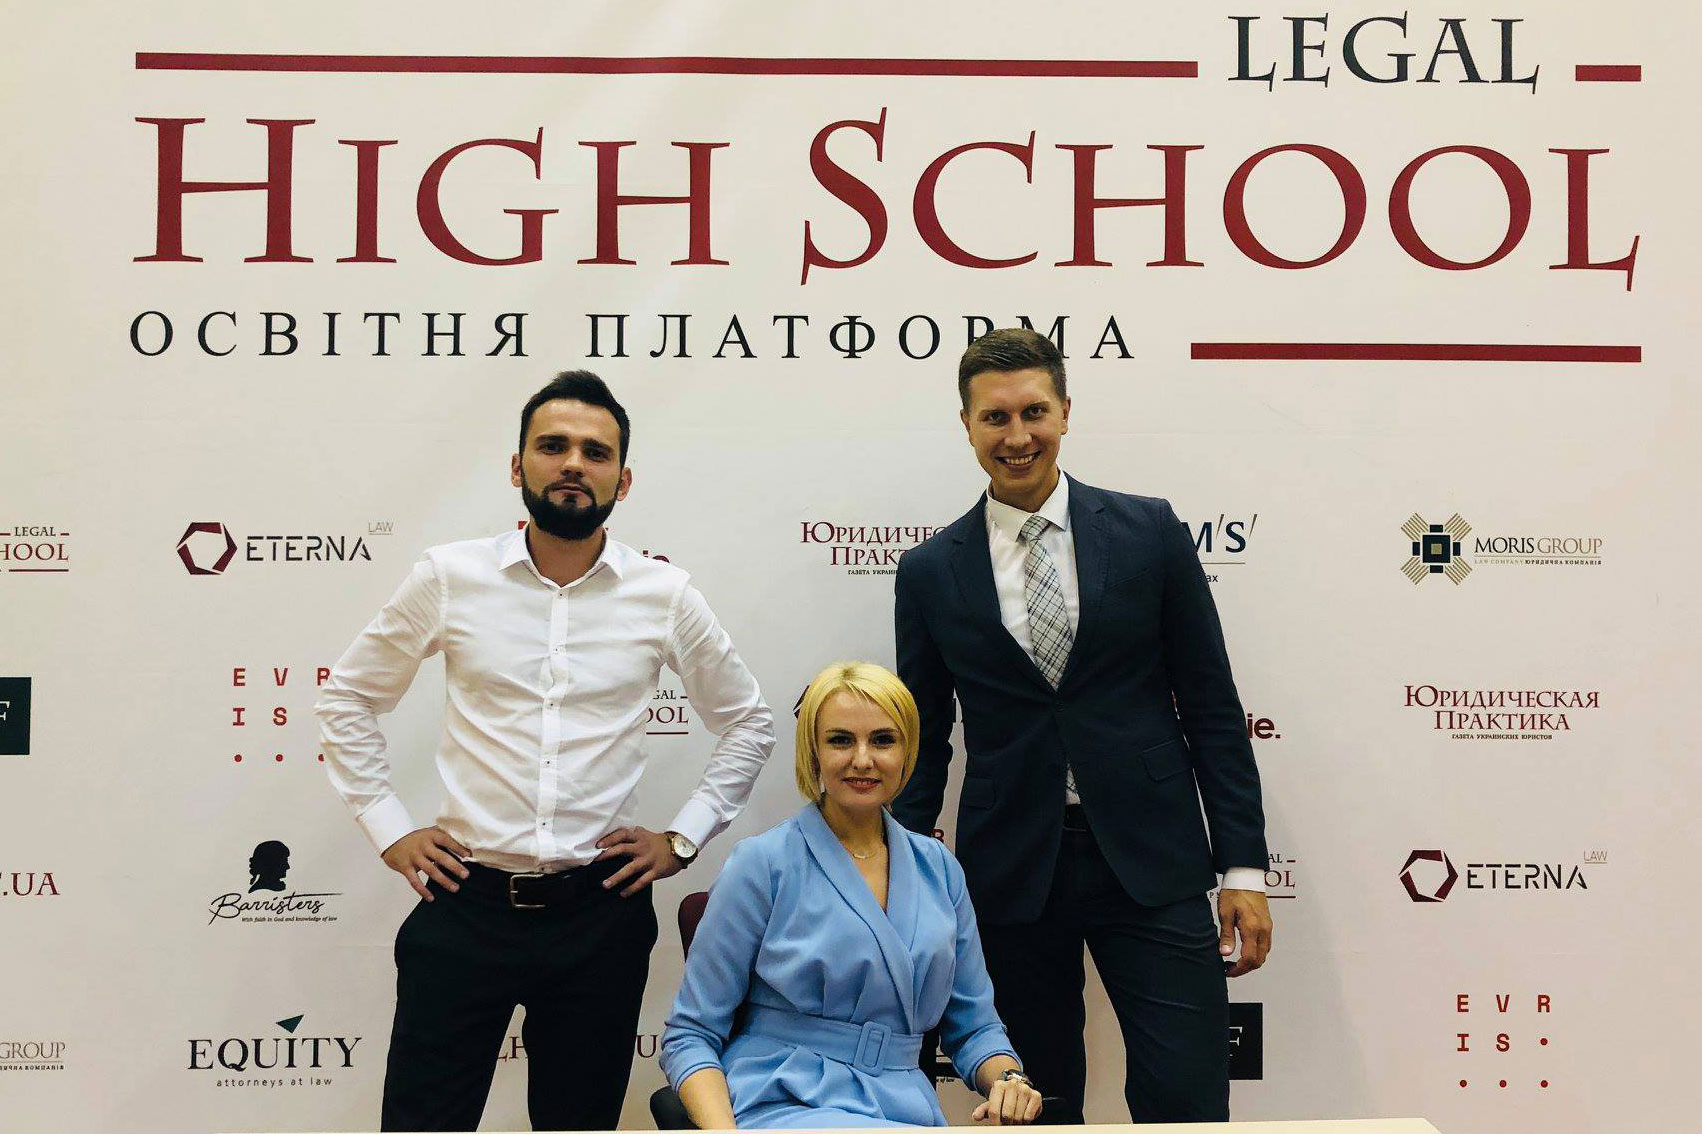 Масеха Богдан прочитає лекцію у Legal High School 07.11.2018